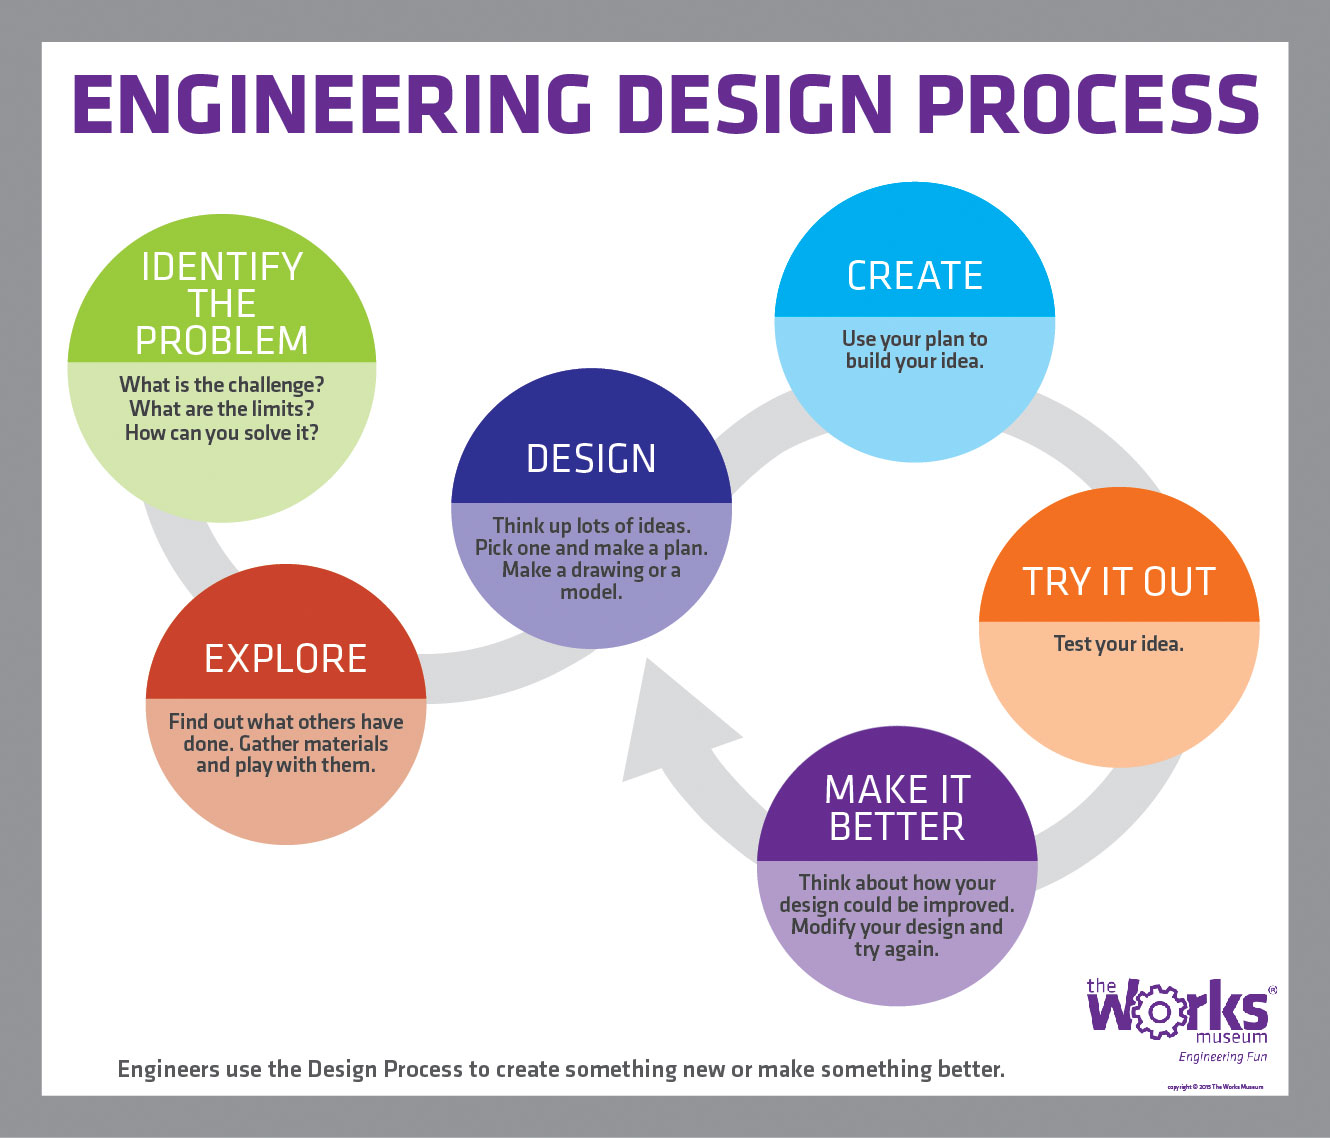 Engineering Design Process – Engineering Design Process Worksheet